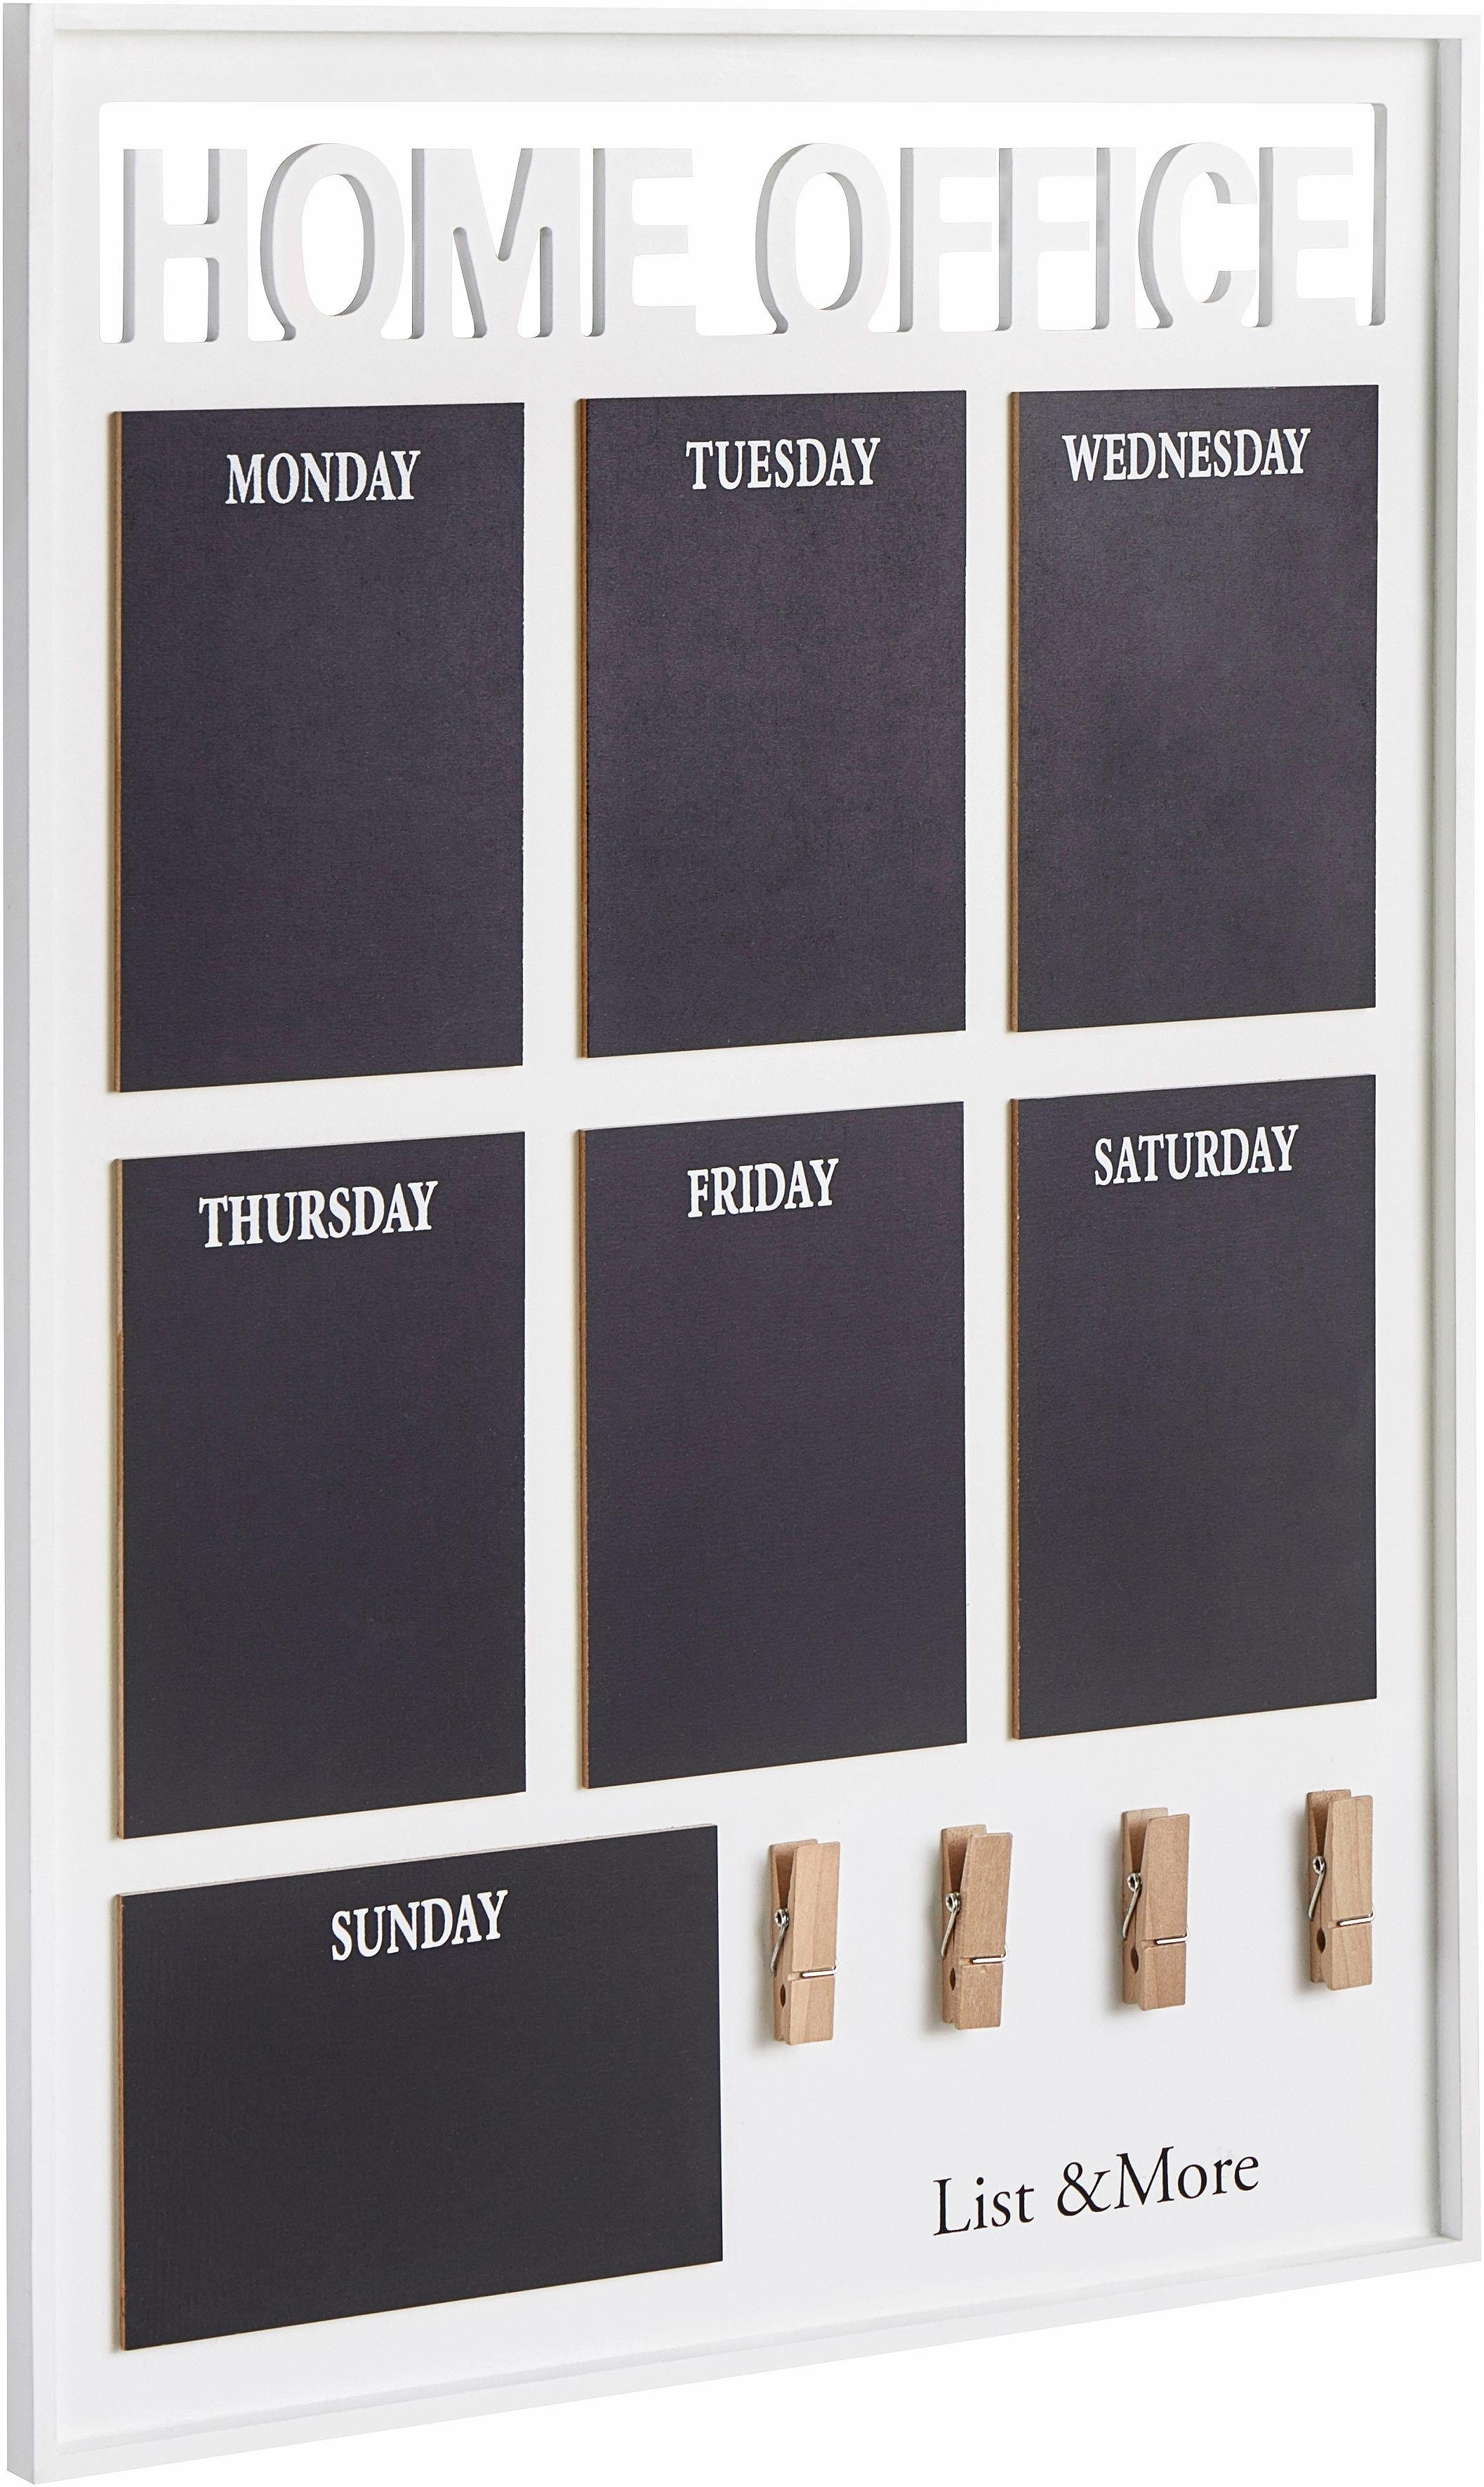 Home affaire Memoboard »Home Office«